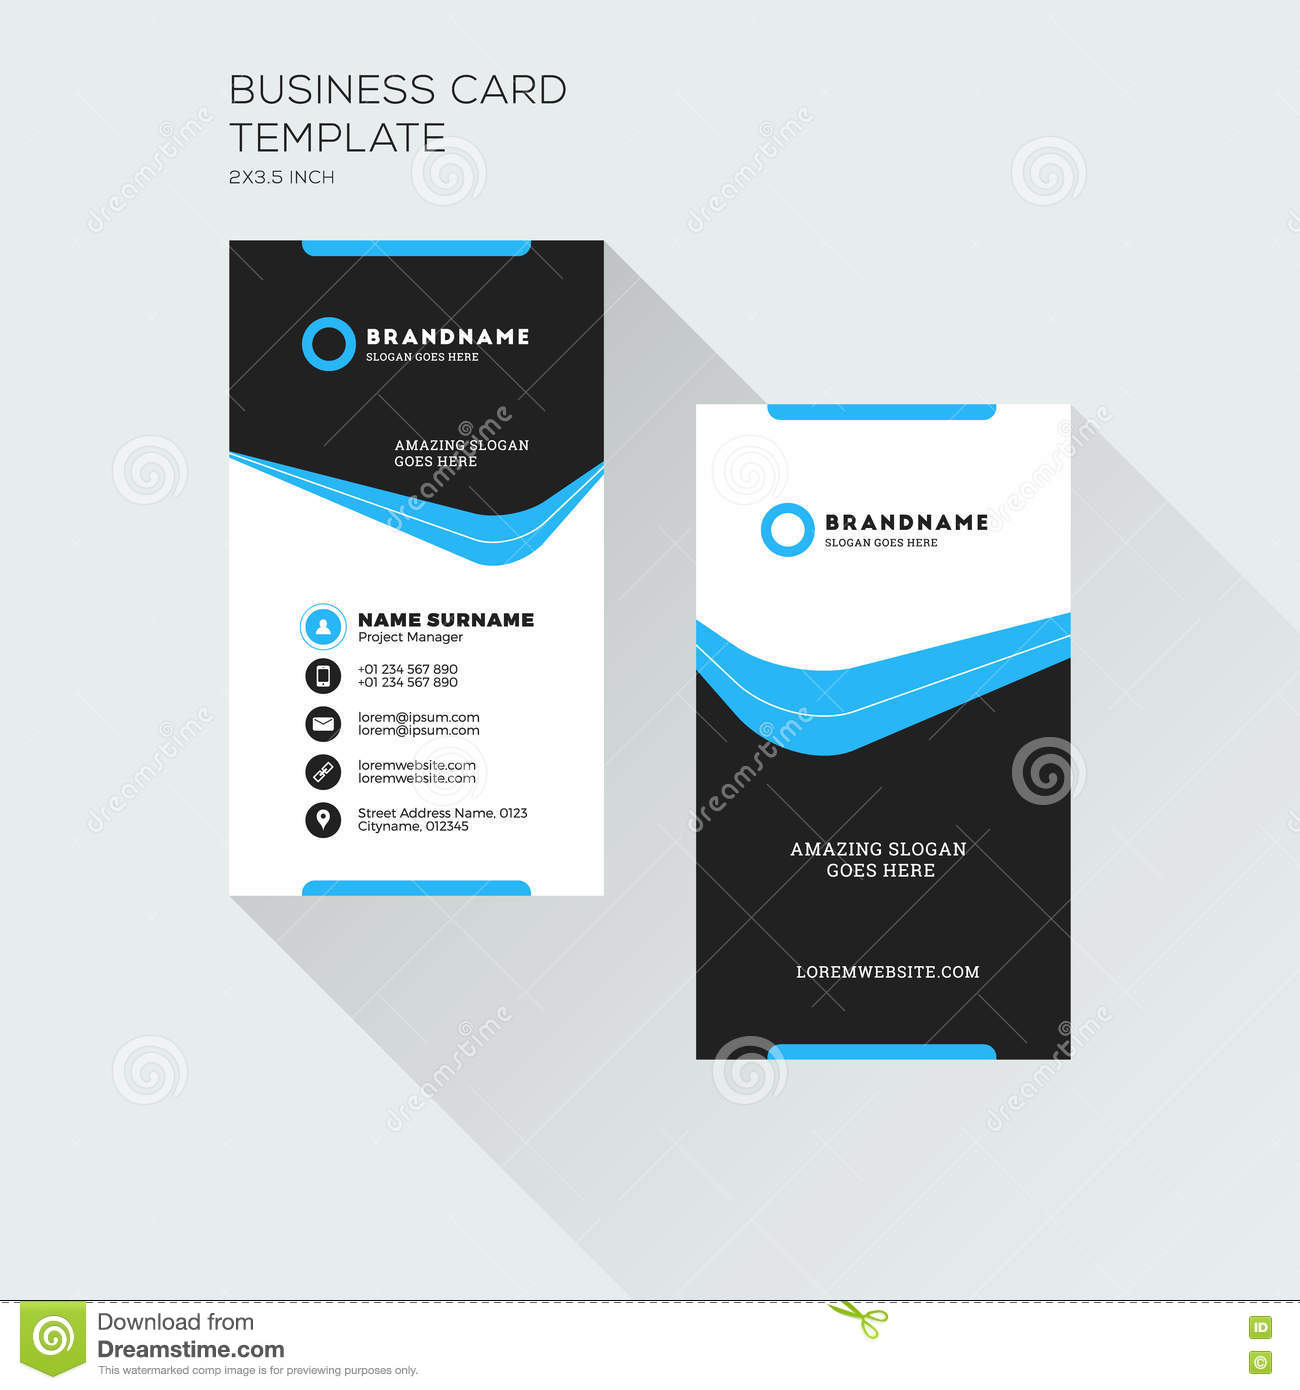 Vertical business card print template personal visiting card wi download vertical business card print template personal visiting card wi stock vector illustration of accmission Images